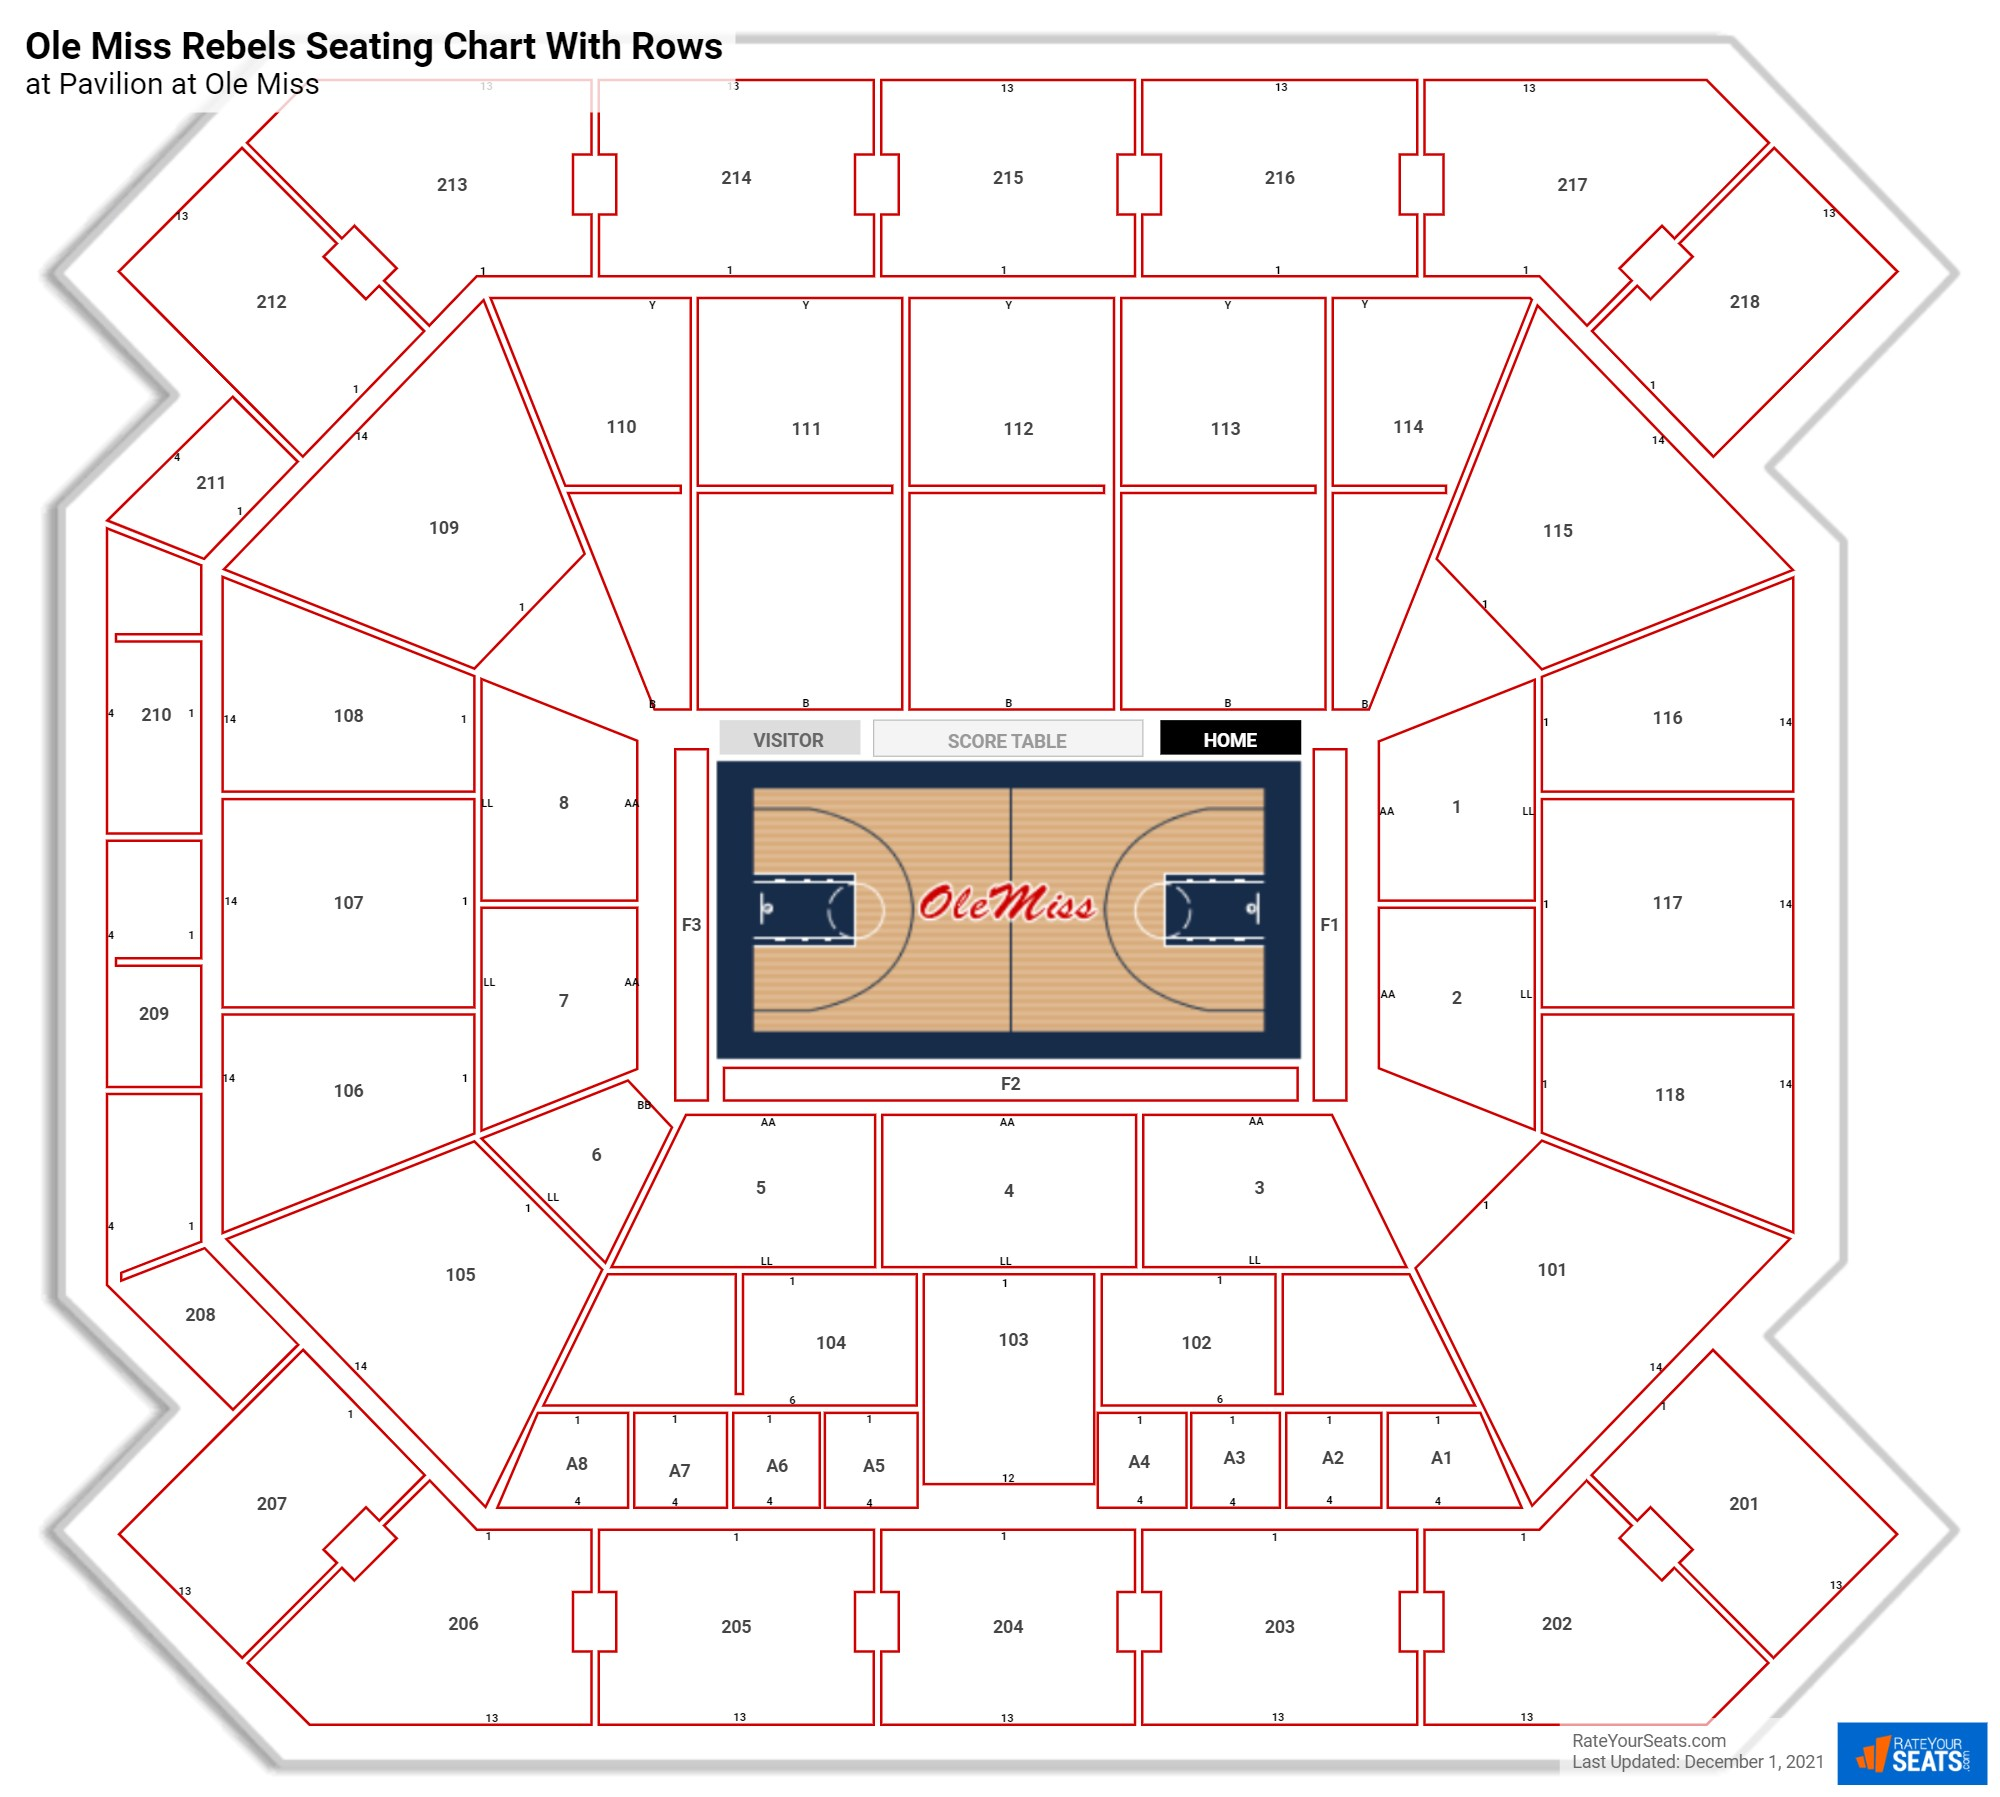 Pavilion at Ole Miss seating chart with rows